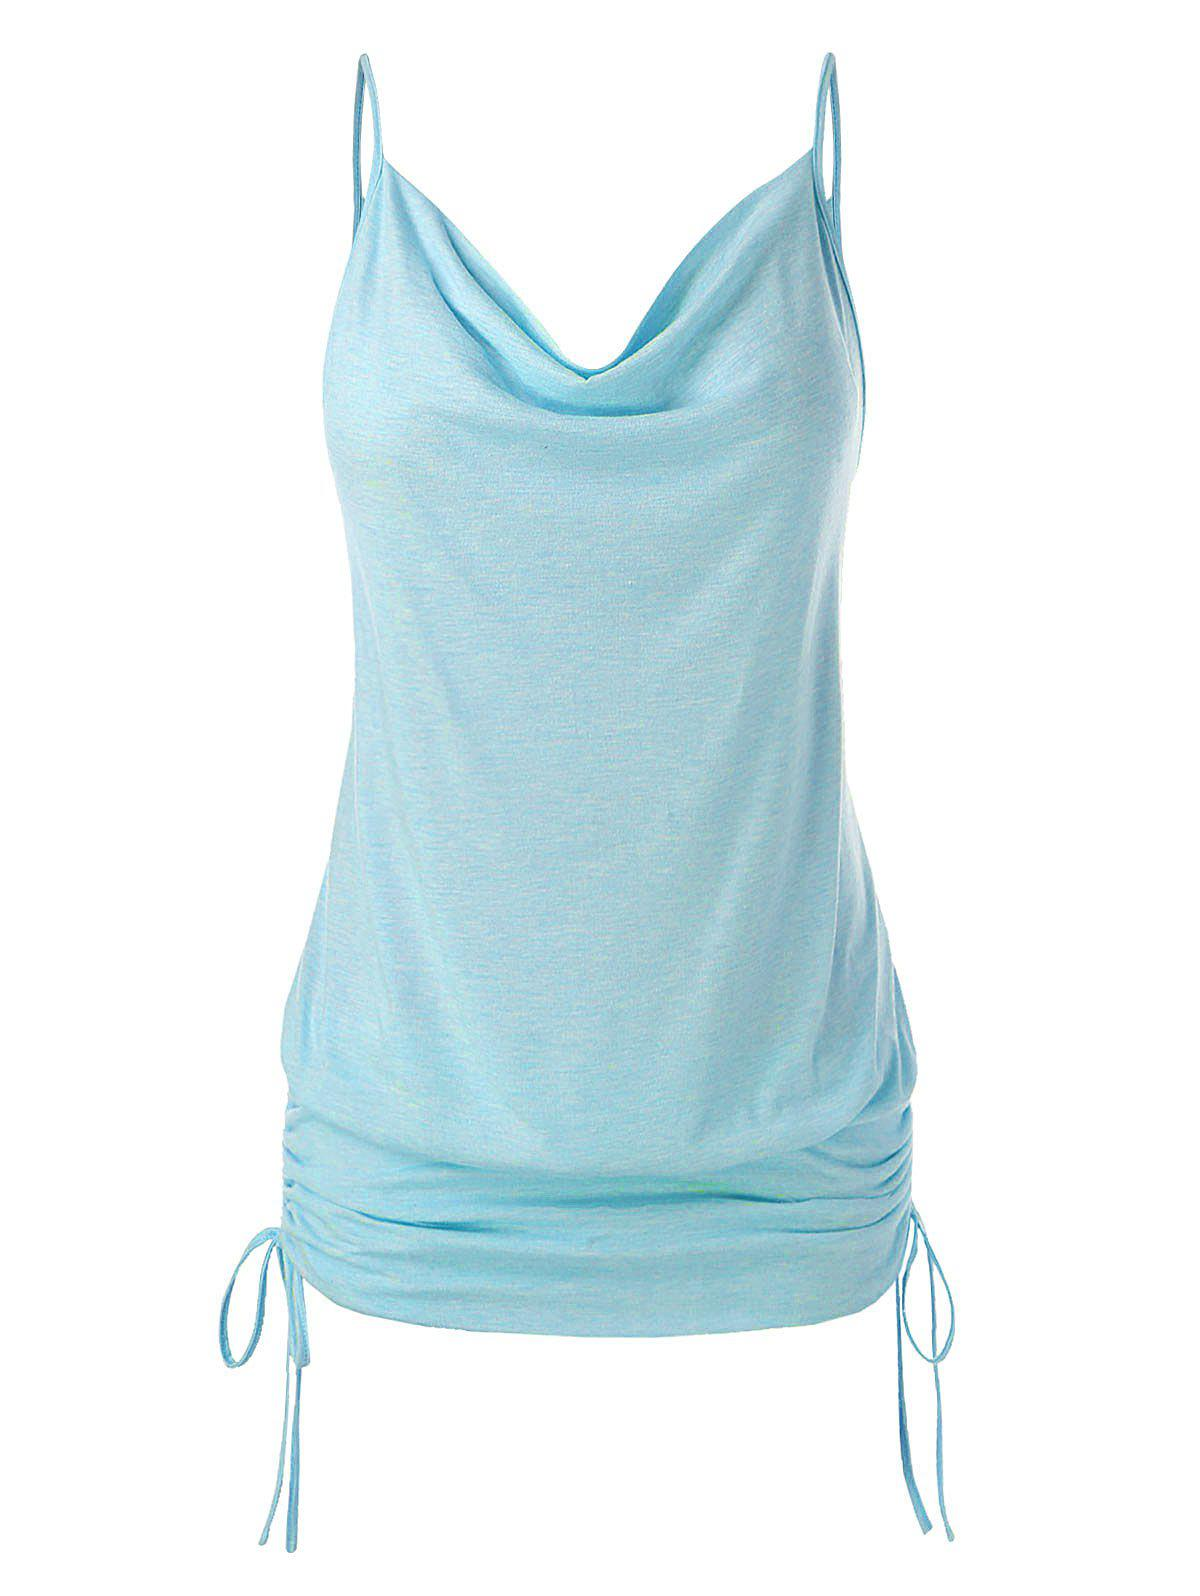 Plus Size Cowl Neck Cinched Cami Top - SEA BLUE L